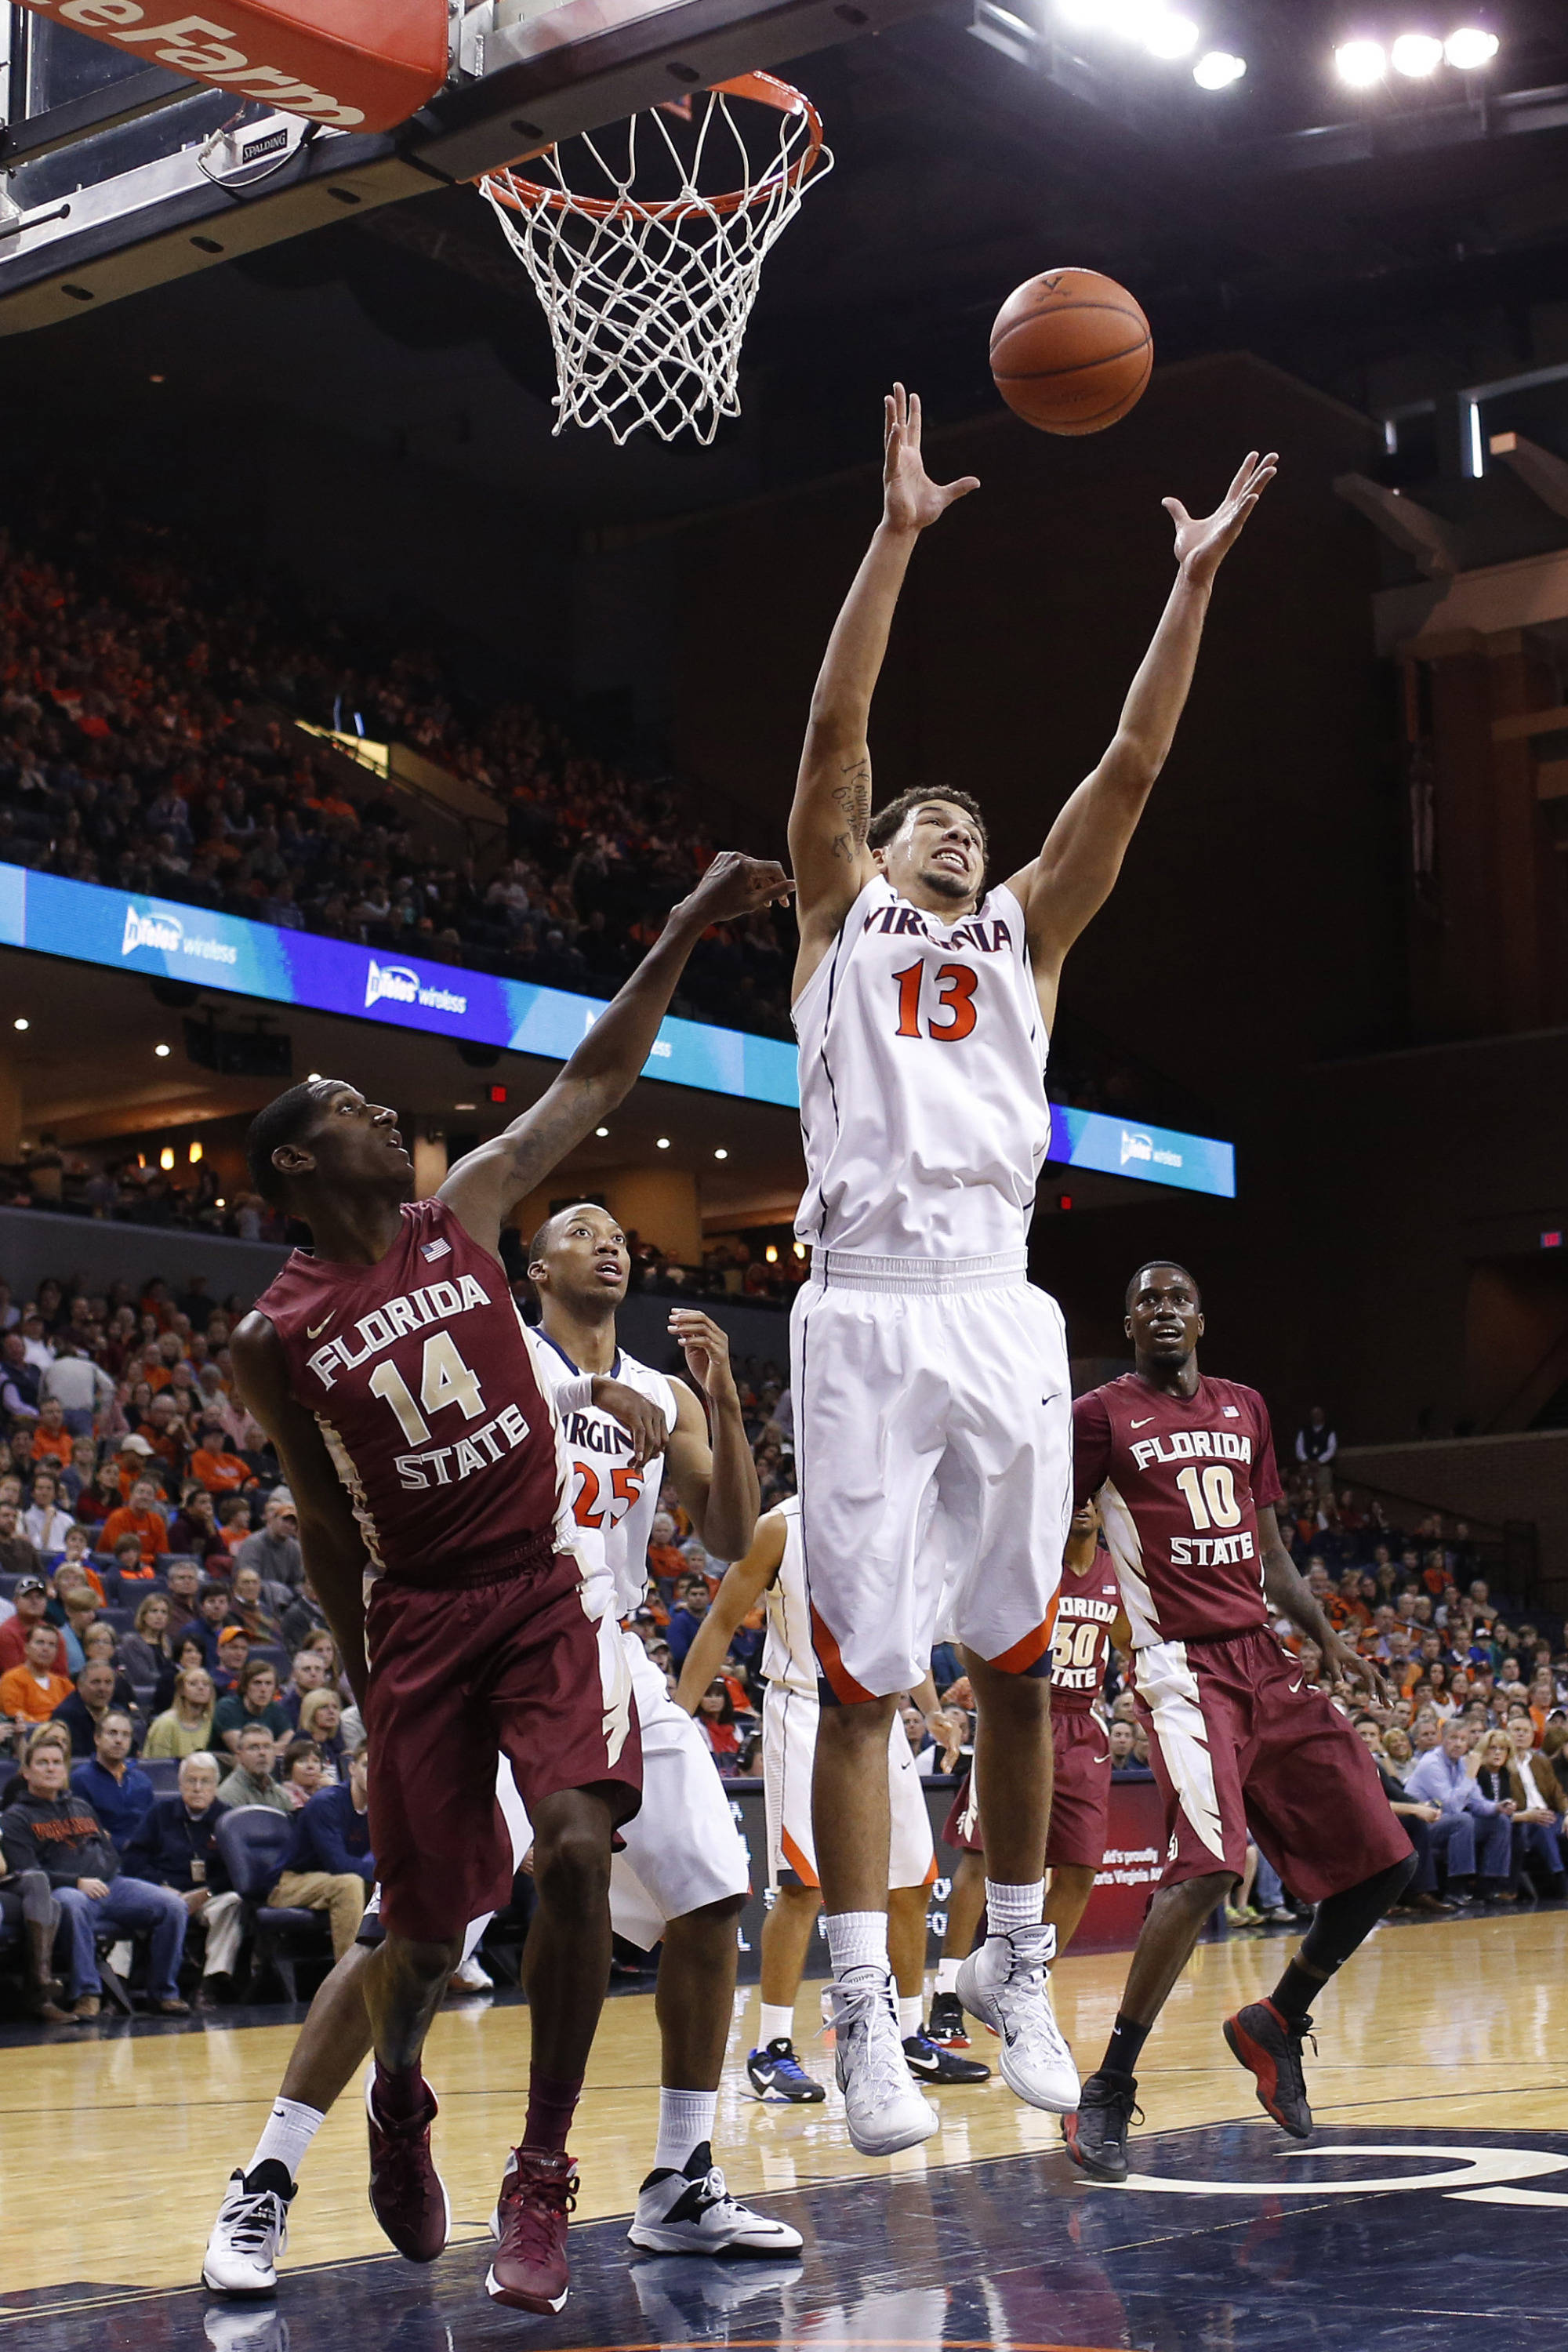 Jan 18, 2014; Charlottesville, VA, USA; Virginia Cavaliers forward Anthony Gill (13) grabs the ball in front of Florida State Seminoles forward Robert Gilchrist (14) in the first half at John Paul Jones Arena. Mandatory Credit: Geoff Burke-USA TODAY Sports